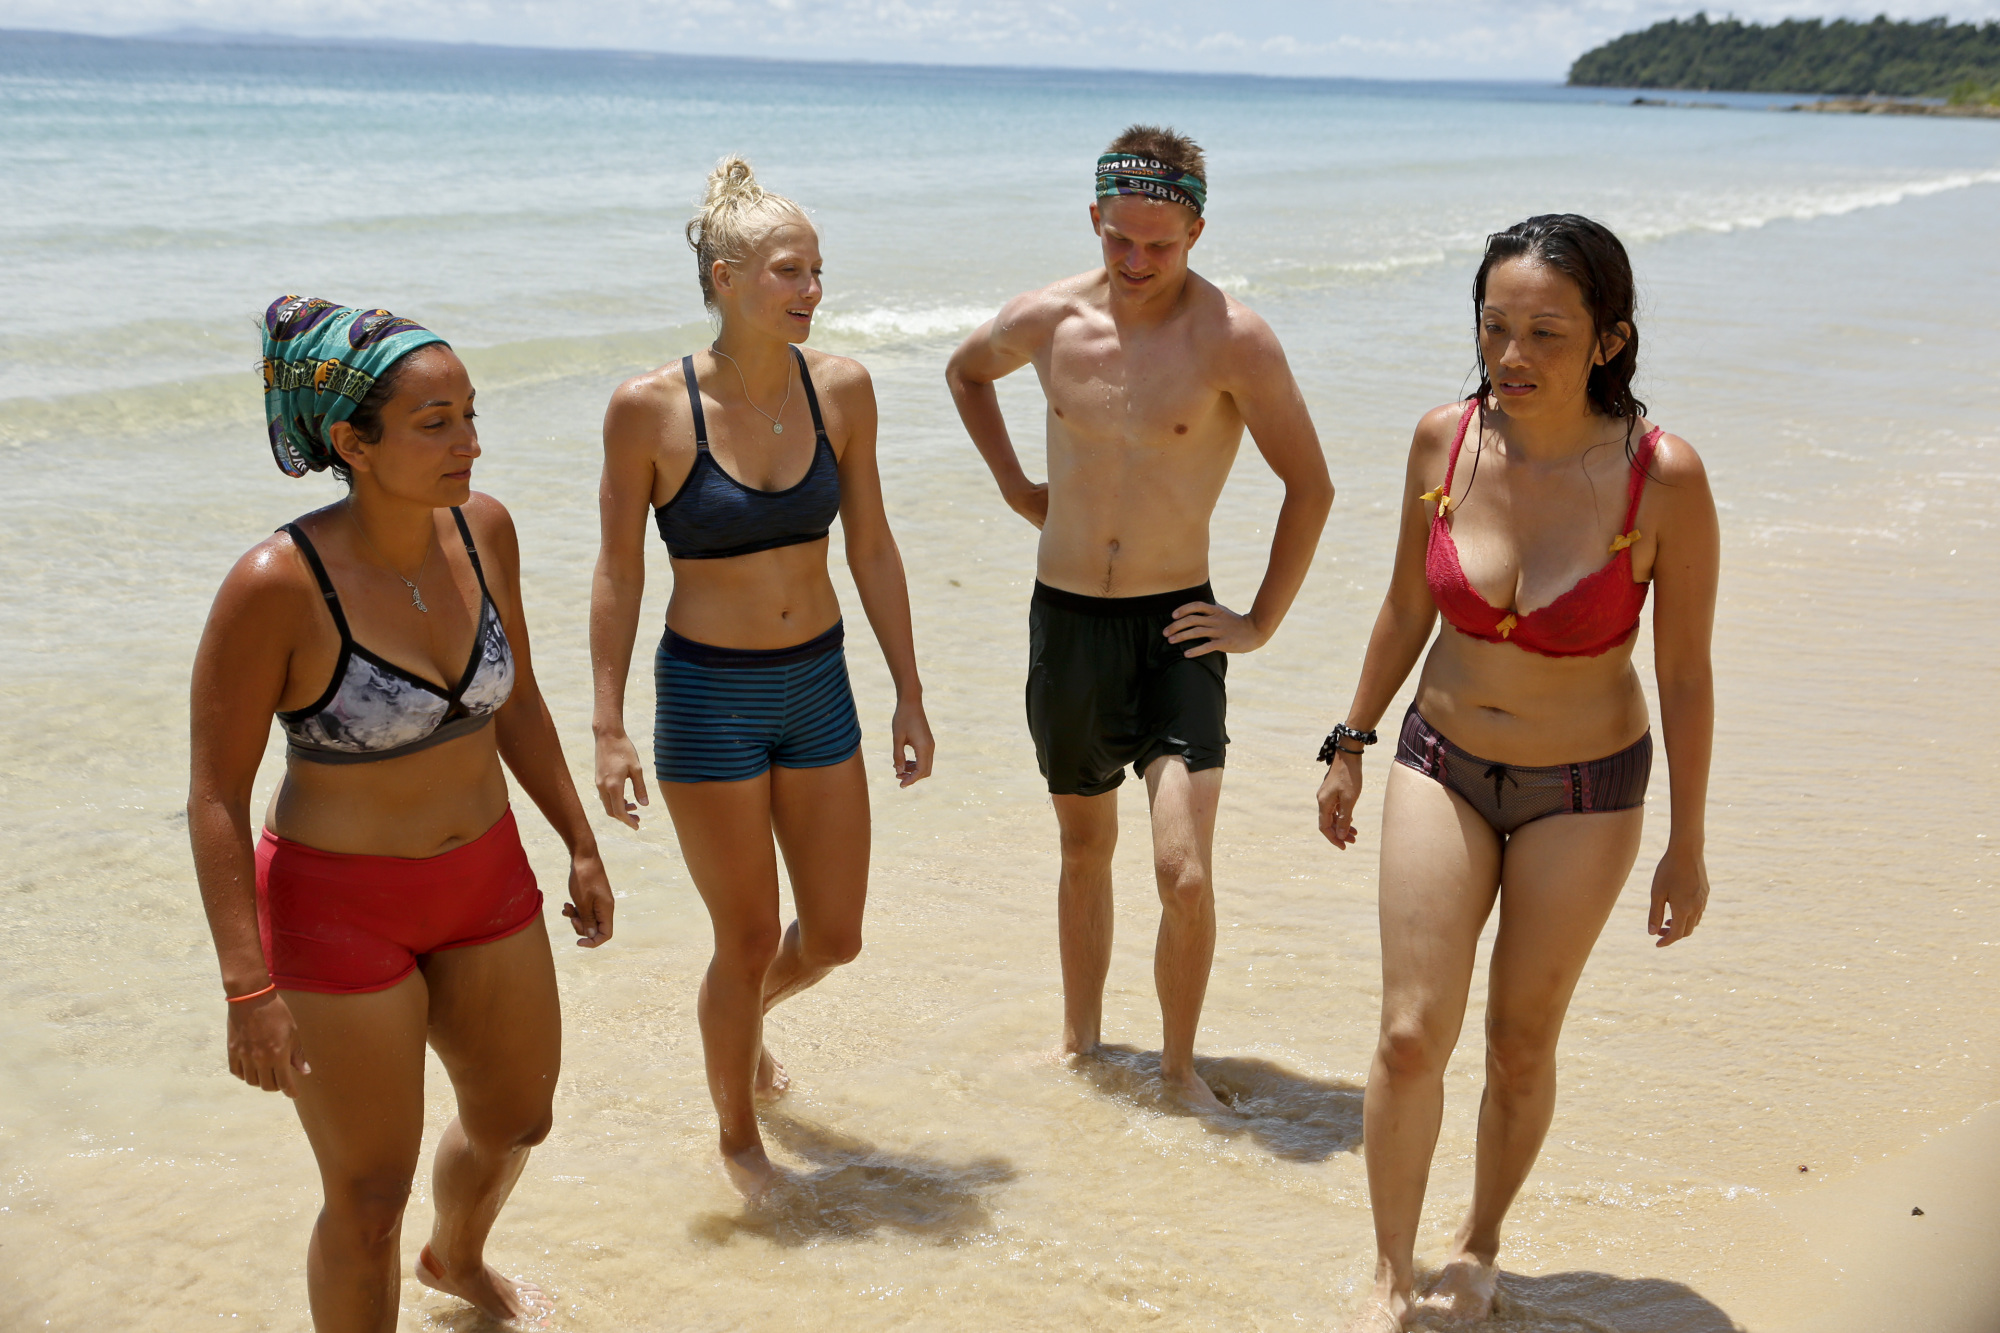 Shirin Oskooi with tribemates Kelley Wentworth, Spencer Bledsoe and Peih-Gee Law on Survivor: Second Chance